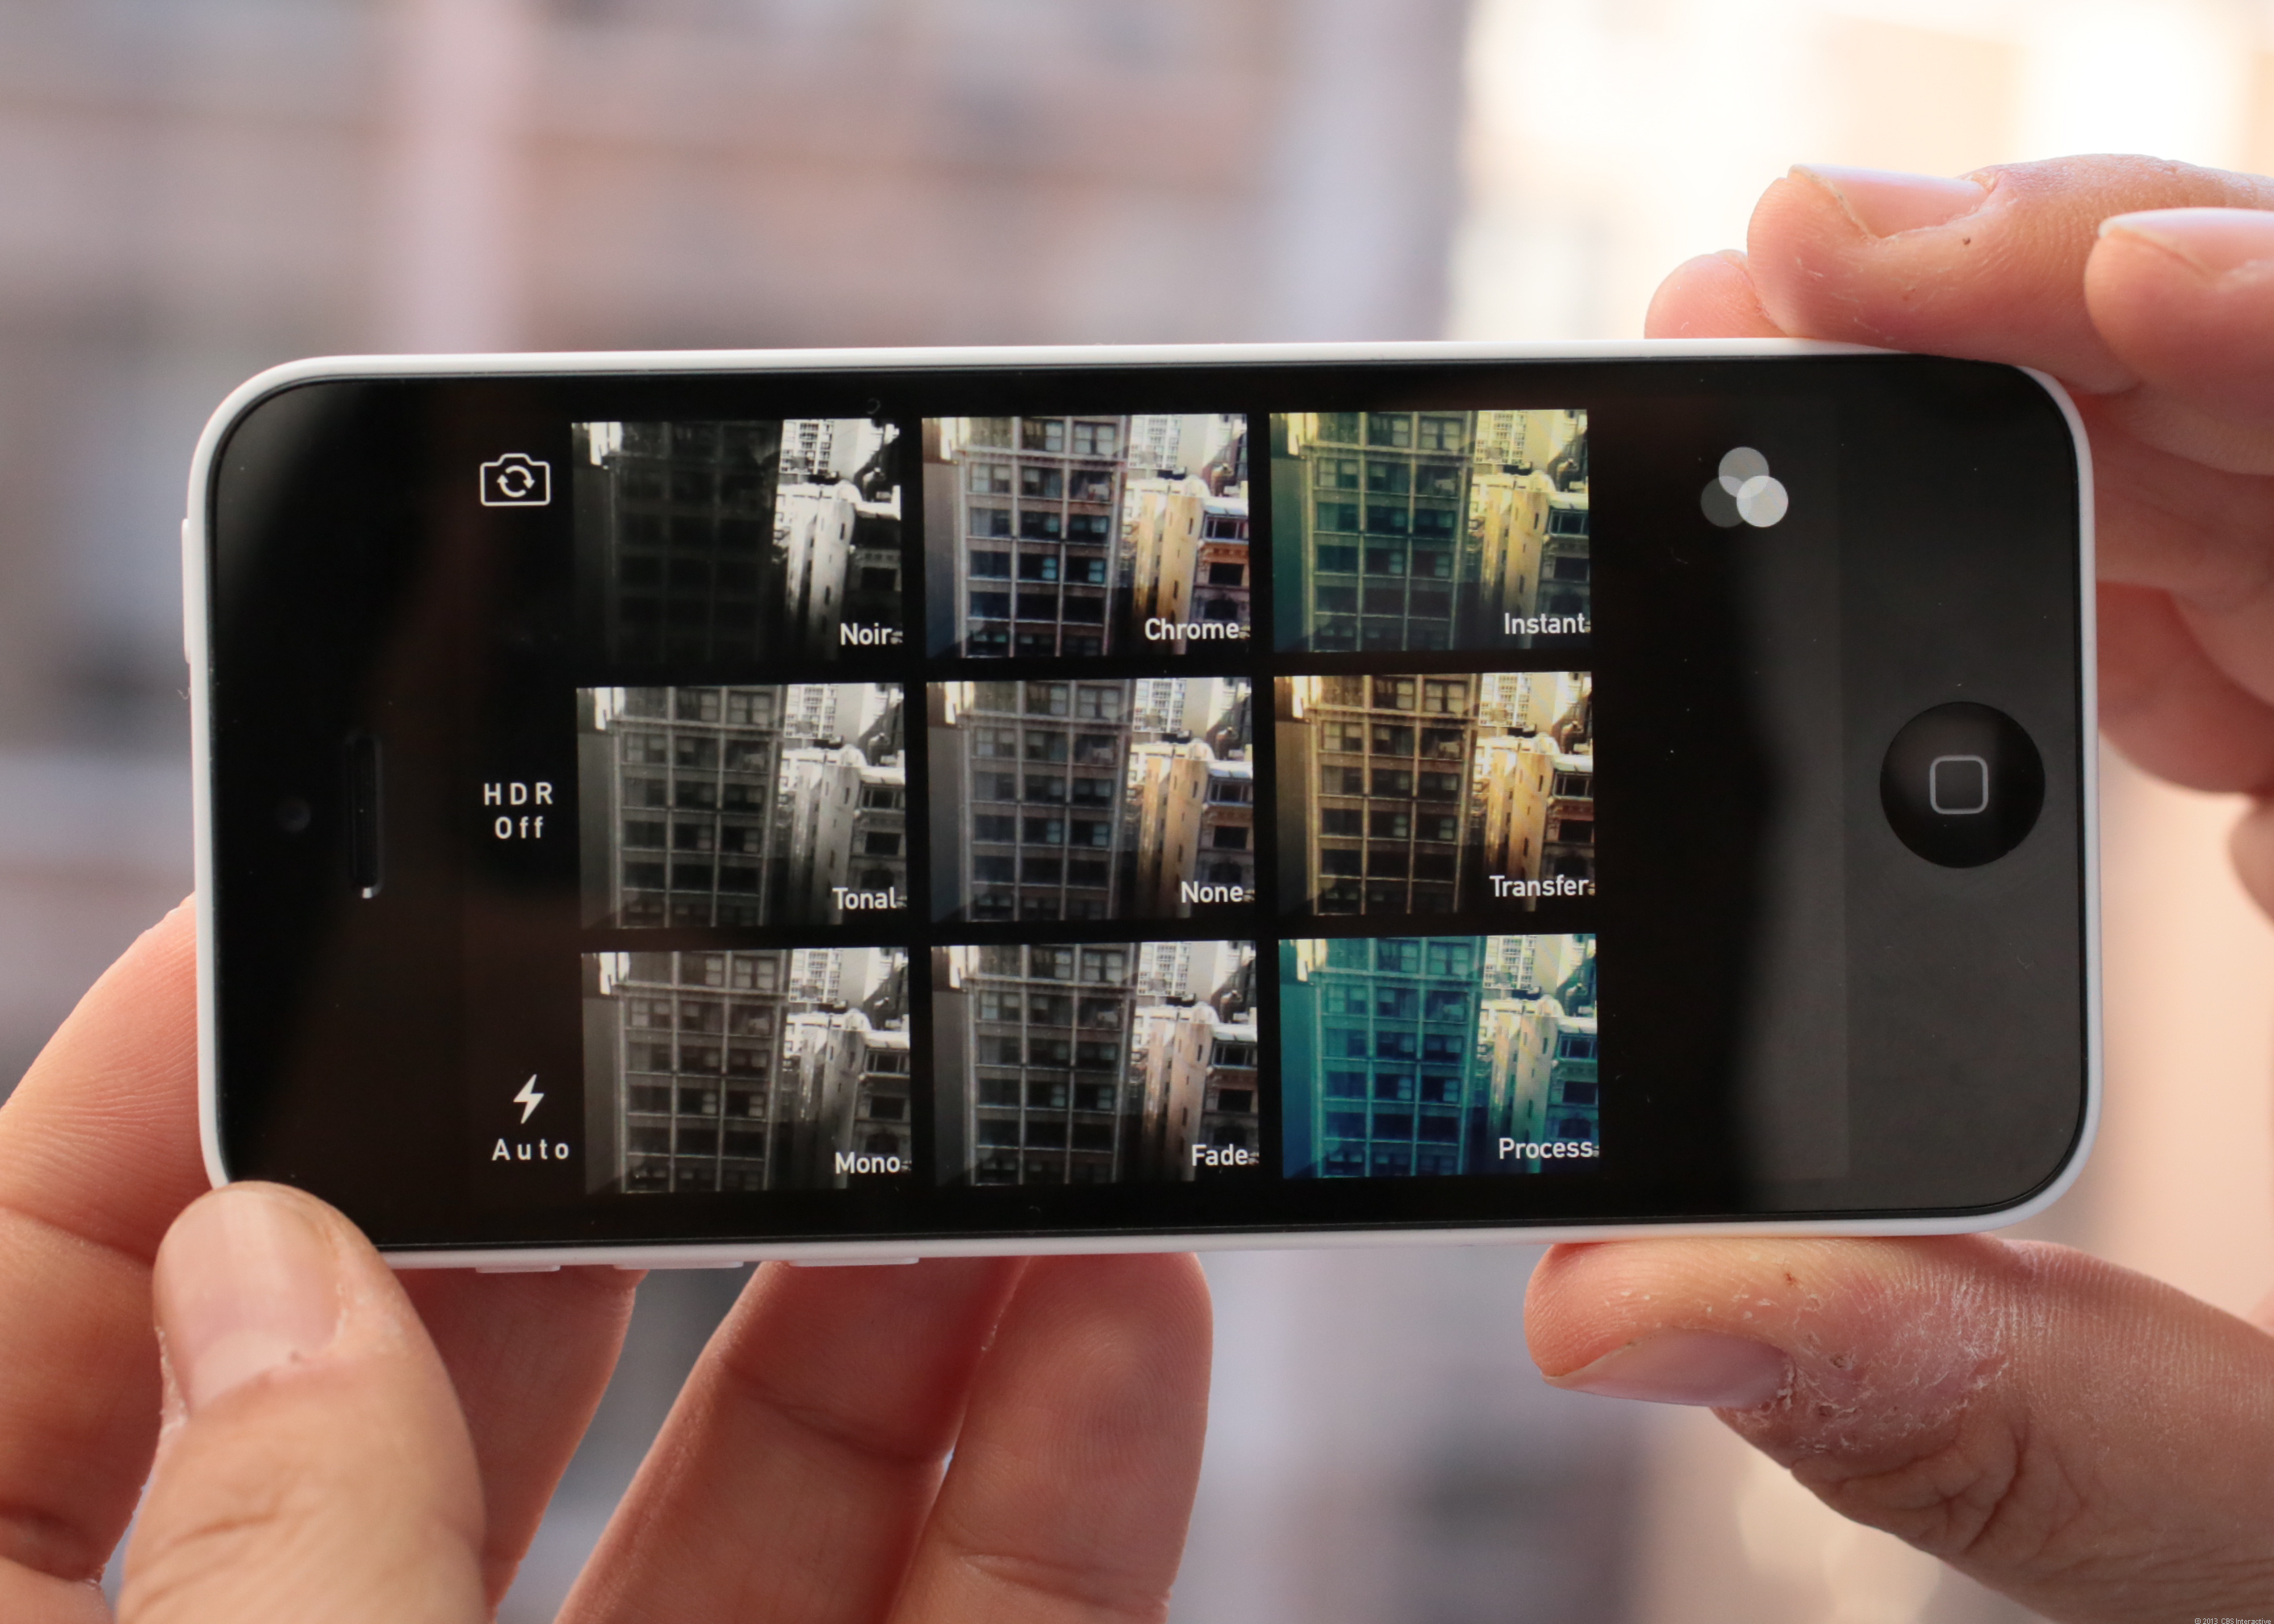 Image processing is one chore that could run faster on Apple's A7 chip inside the iPhone 5S -- but not necessarily because it's a 64-bit chip.